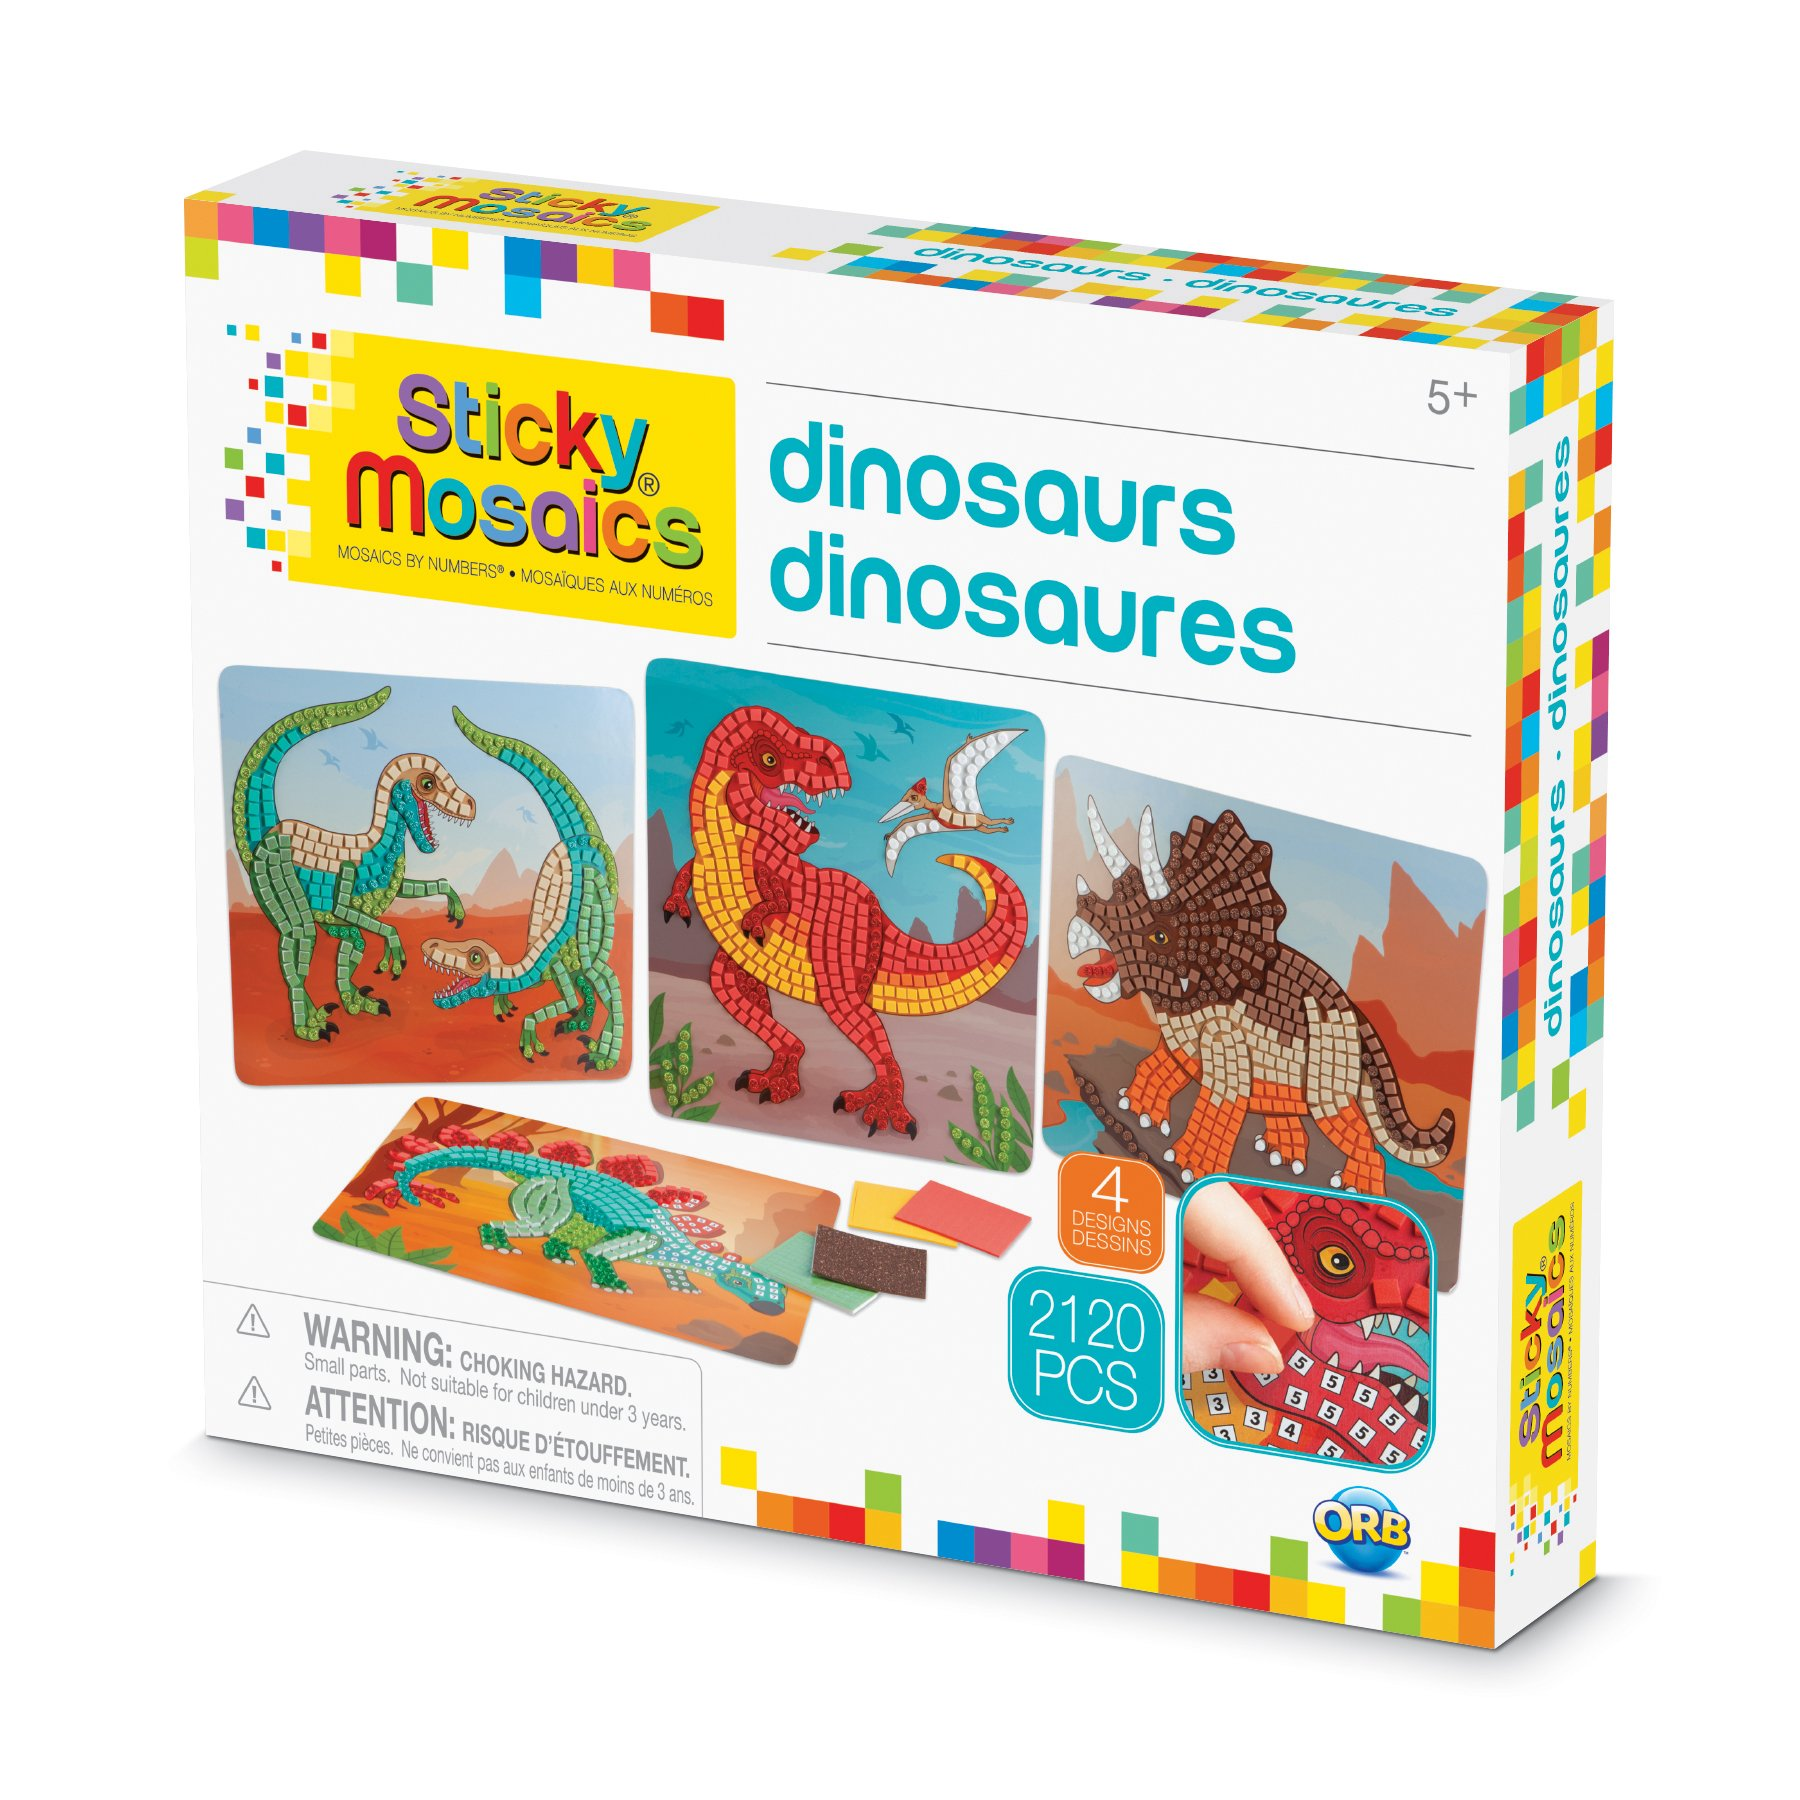 The Orb Factory Sticky Mosaics Dinosaurs Arts & Crafts, Green/Brown/Orange/Blue, 12'' x 2'' x 10.75'' by The Orb Factory